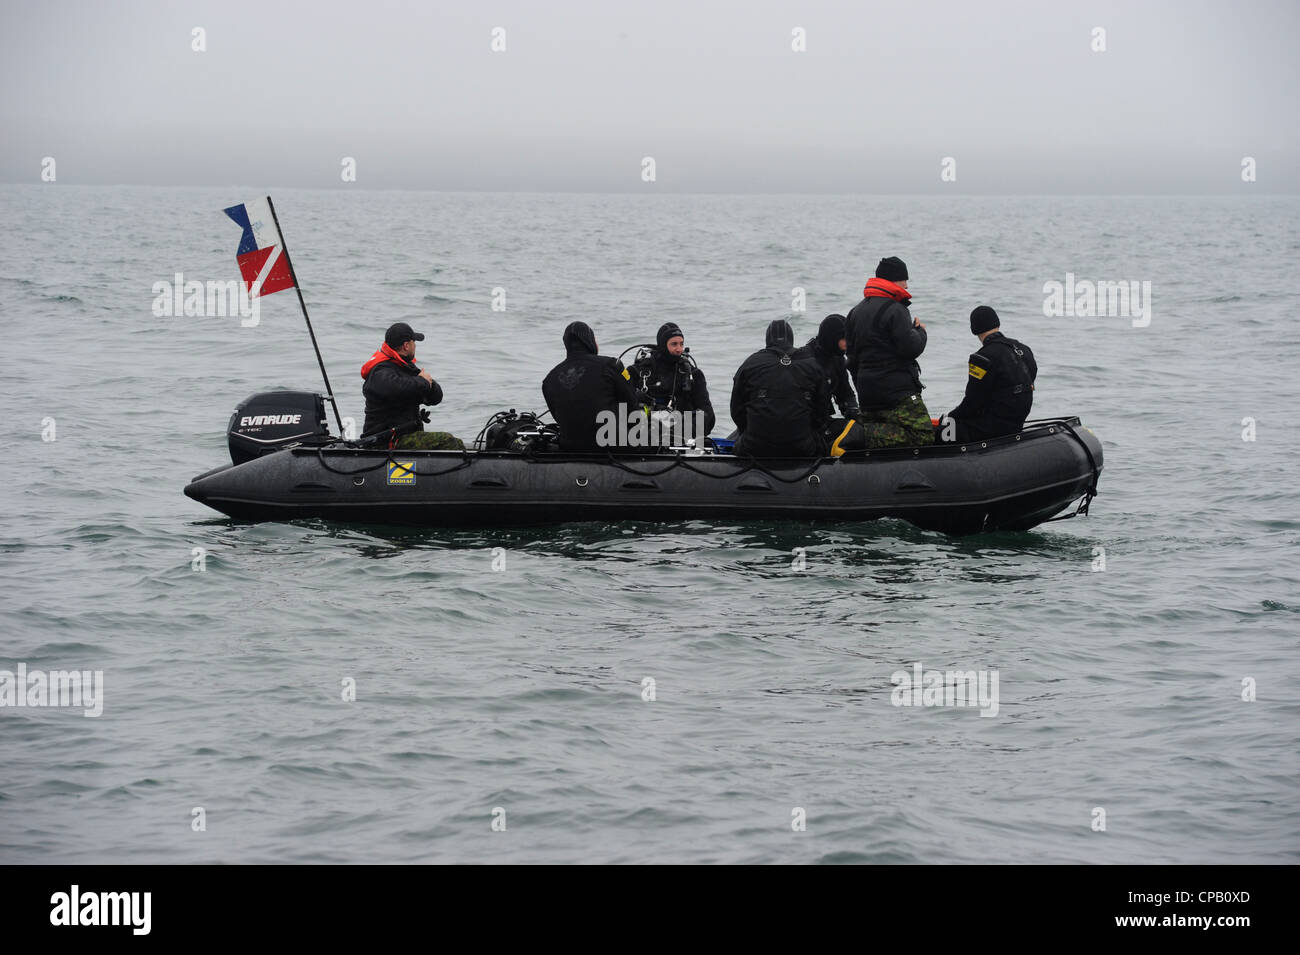 ) Canadian Army combat divers from 4 Engineering Support Regiment search for simulated mines in Sydney Harbor during - Stock Image